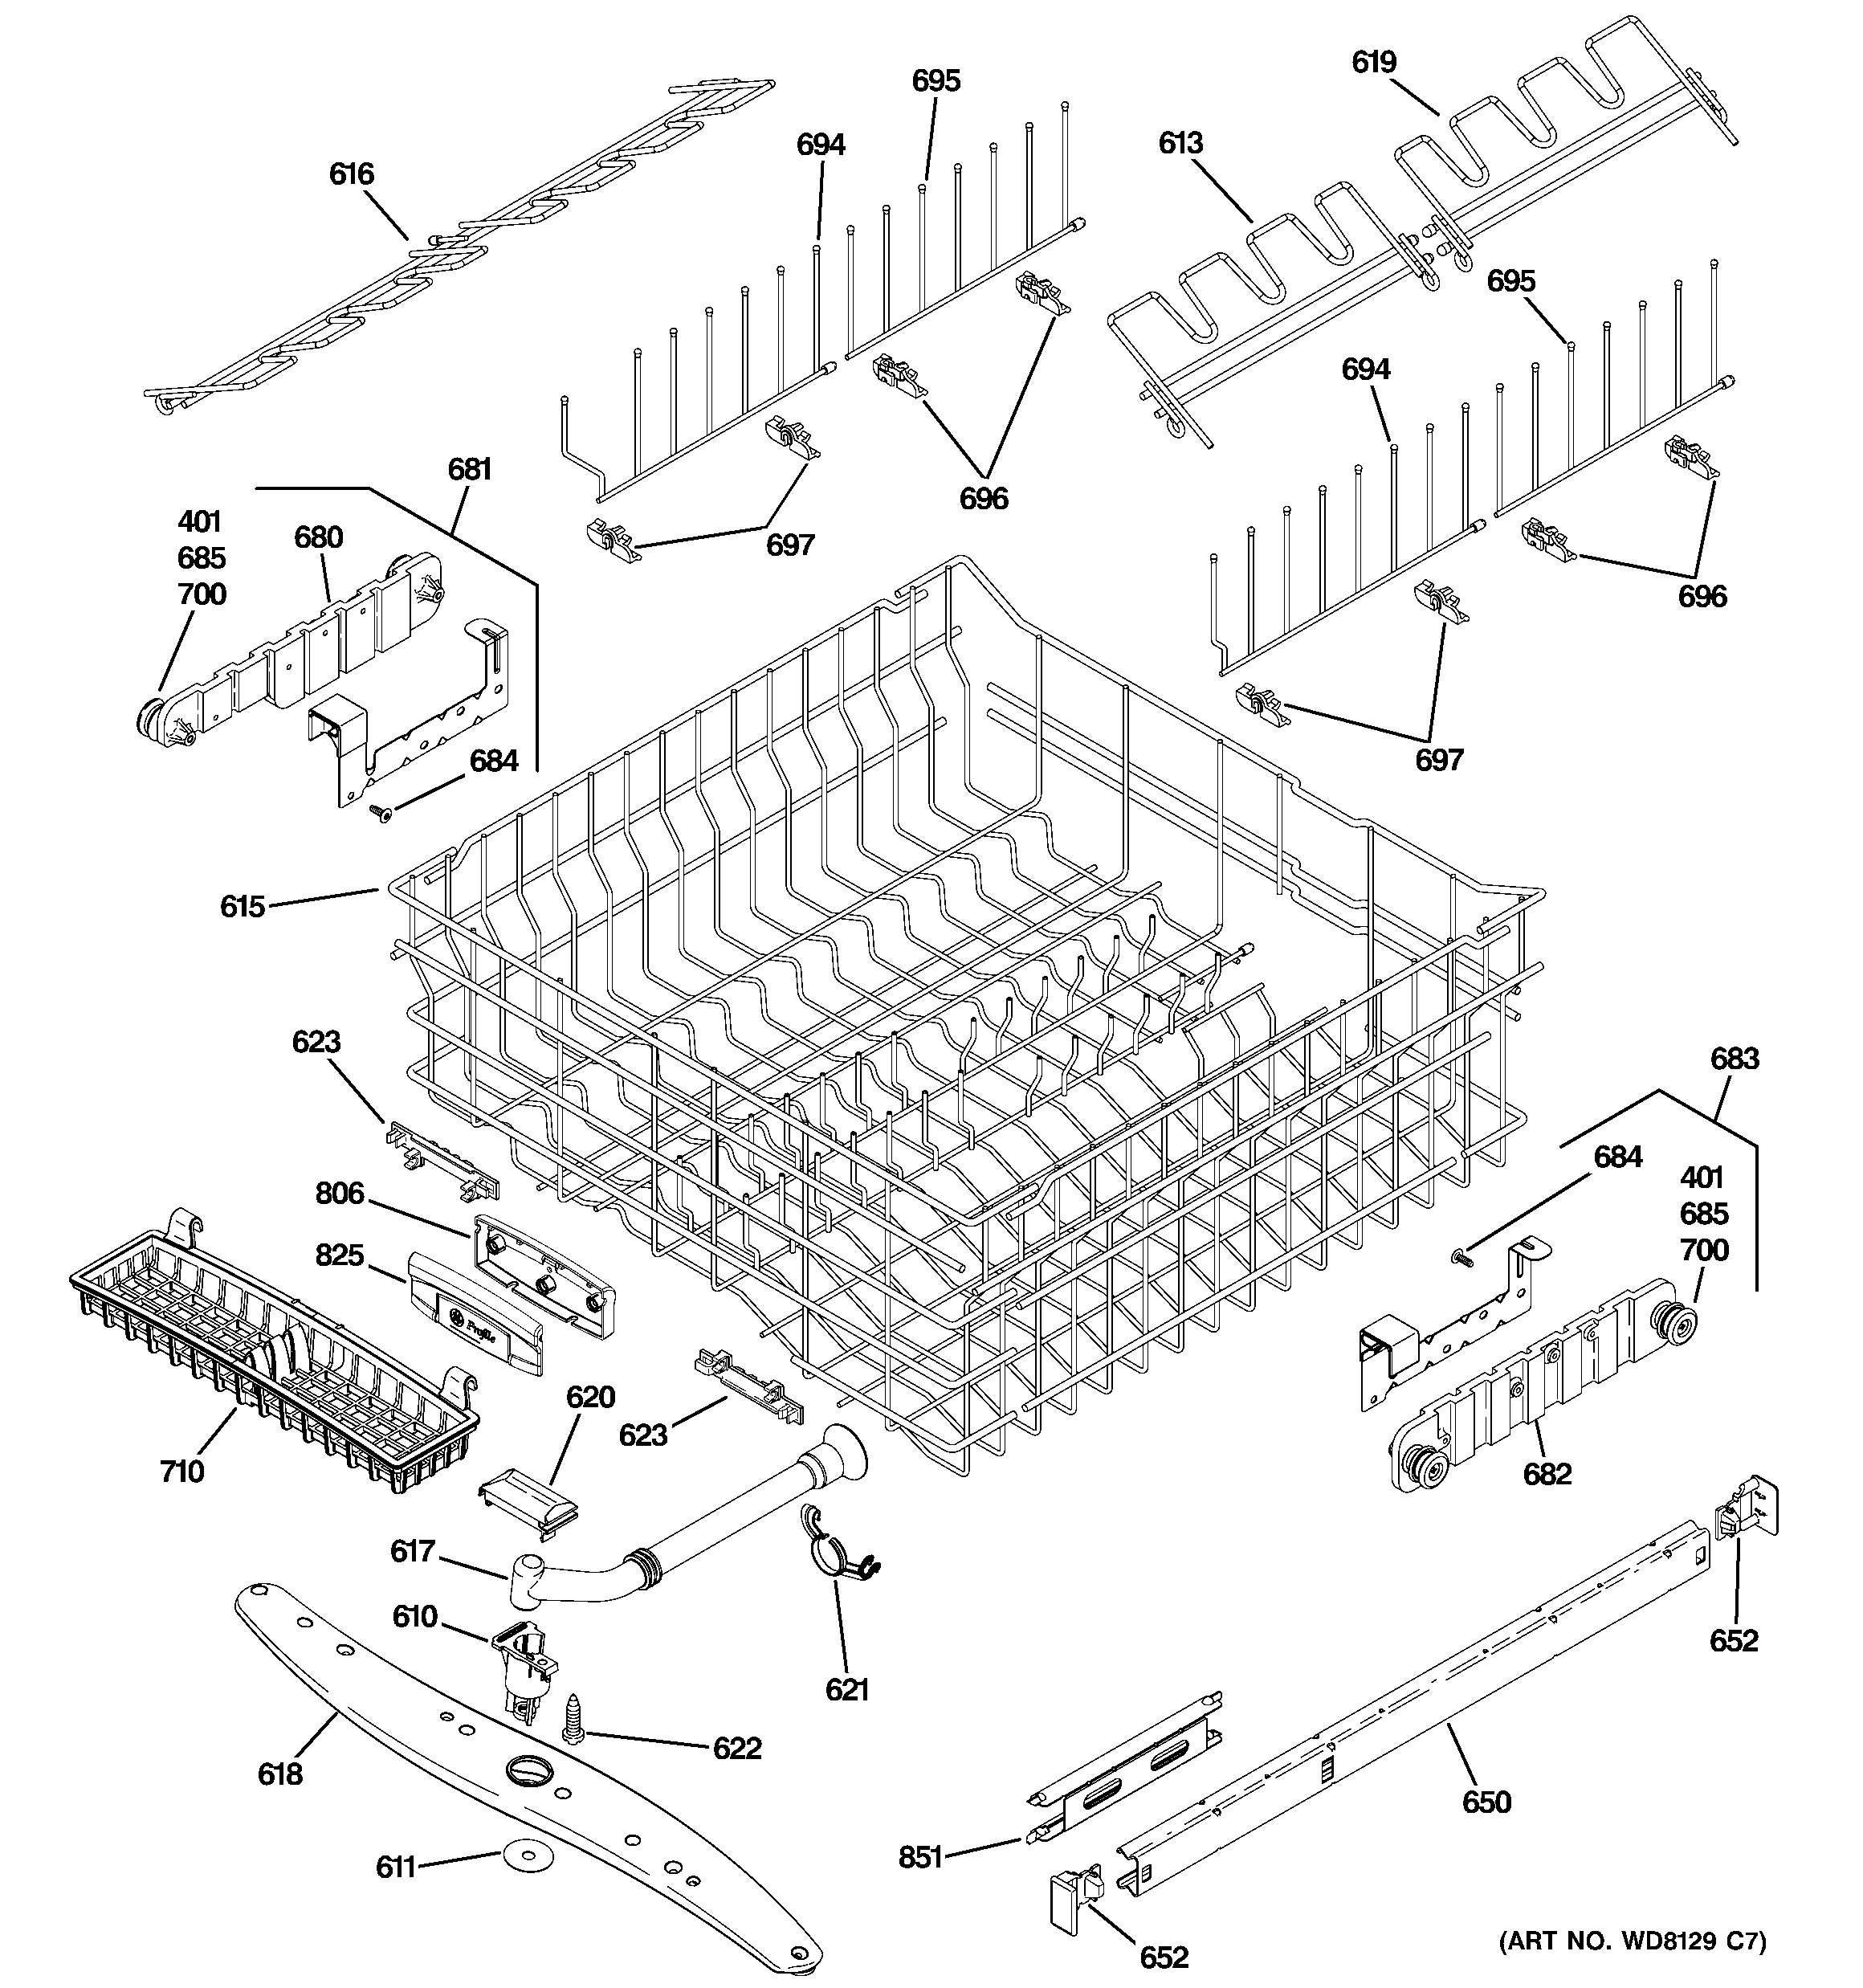 UPPER RACK ASSEMBLY Diagram & Parts List for Model